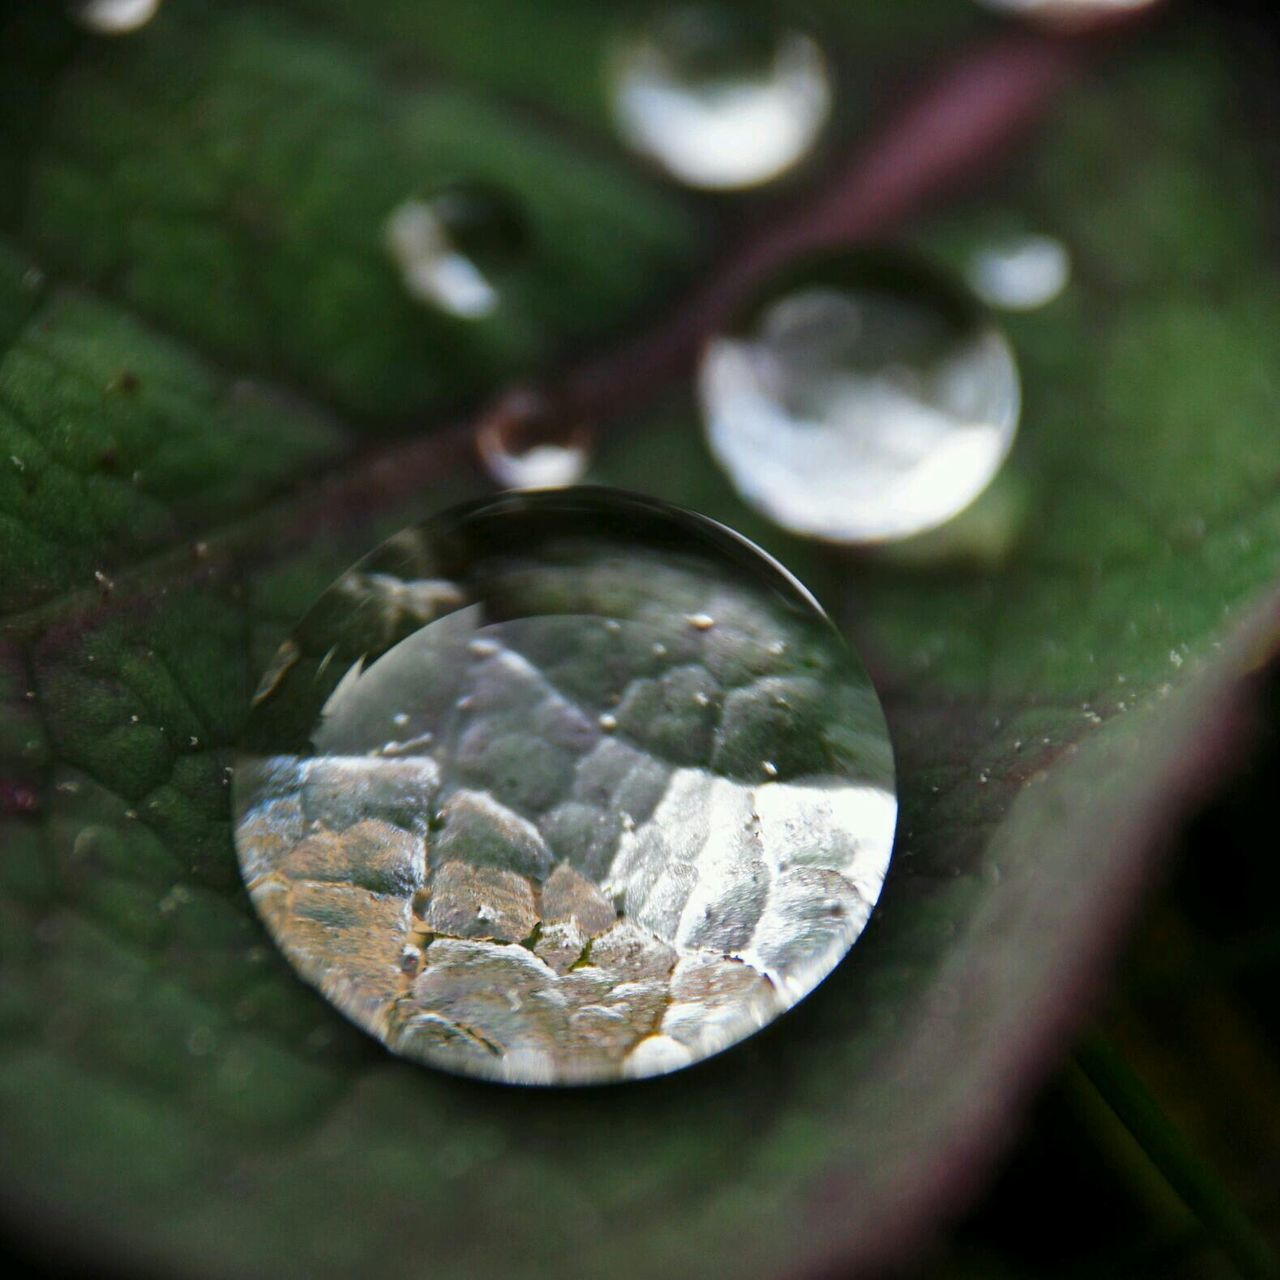 Macro shot of leaf on water droplets